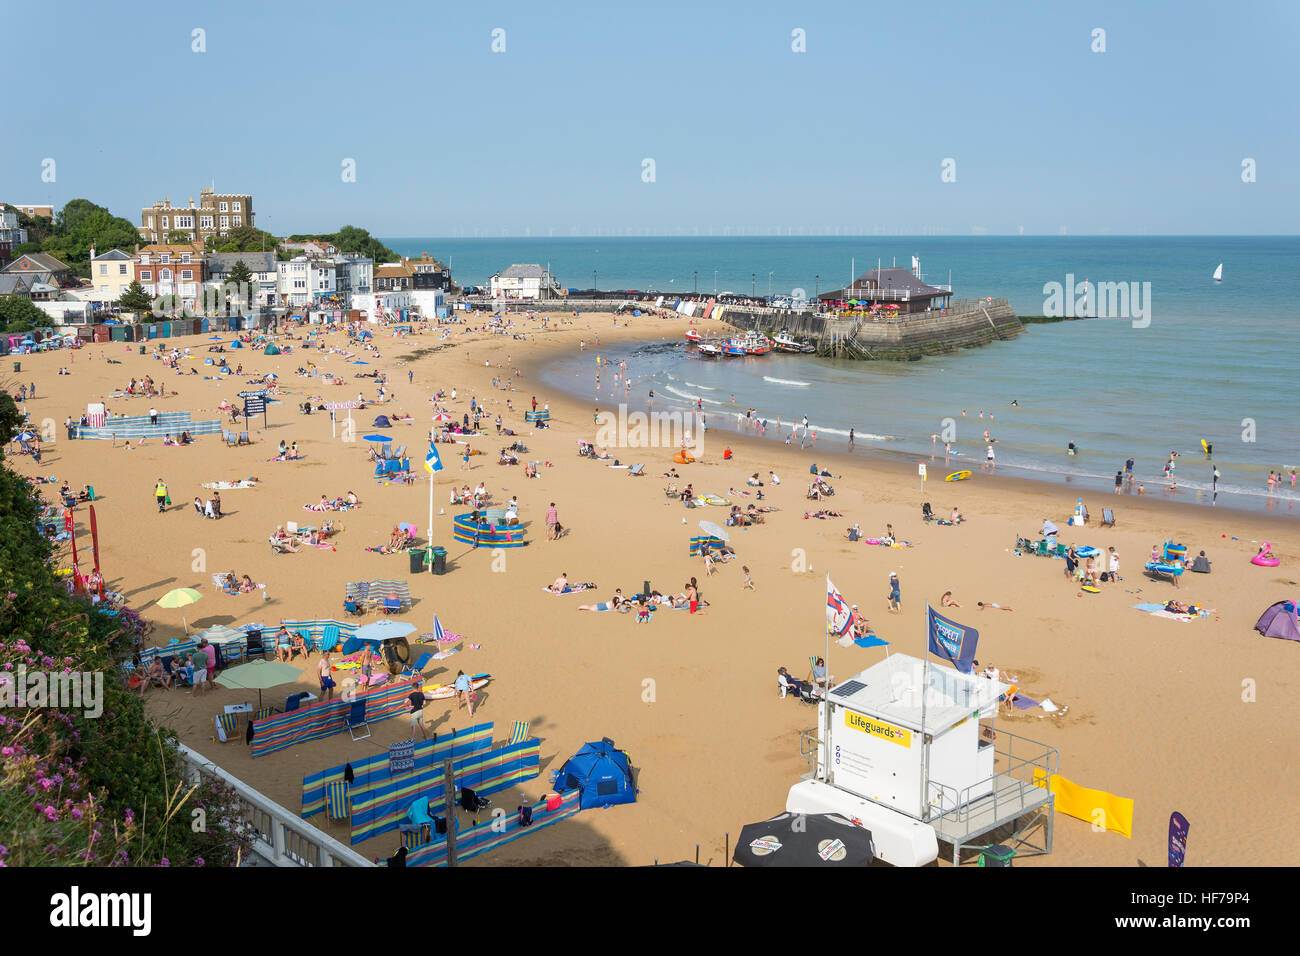 Viking Bay Beach, Broadstairs, Isle of Thanet, Thanet District, Kent, England, United Kingdom - Stock Image